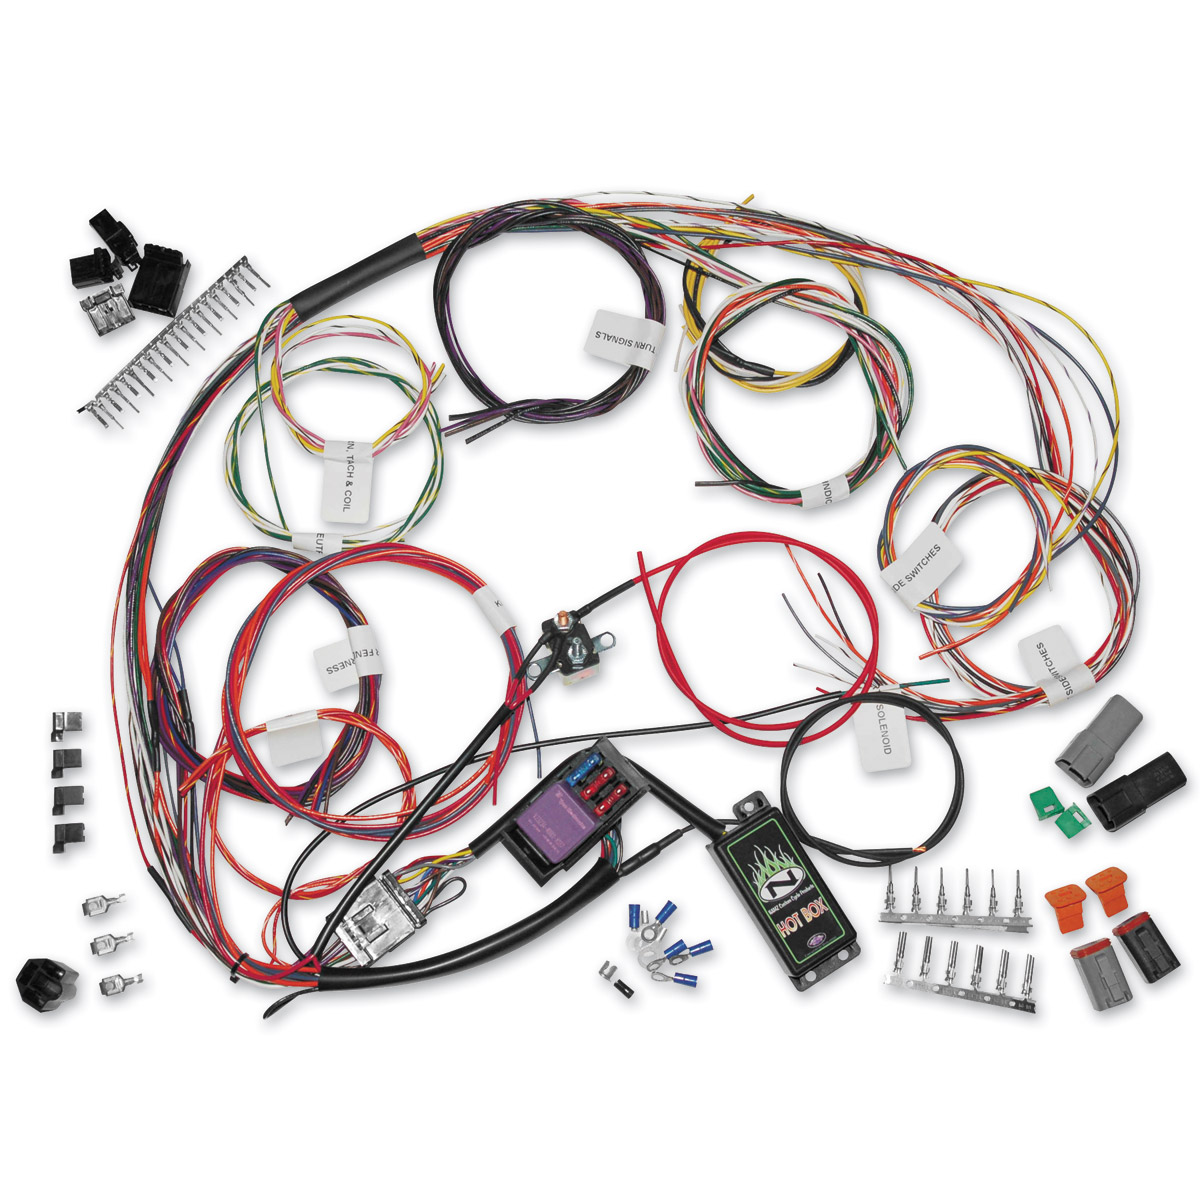 Bicycle Wiring Harness Diagram Blog Airline Wire Namz Custom Cycle Complete Bike Kit Ncbh 01 A Aircraft Assembly